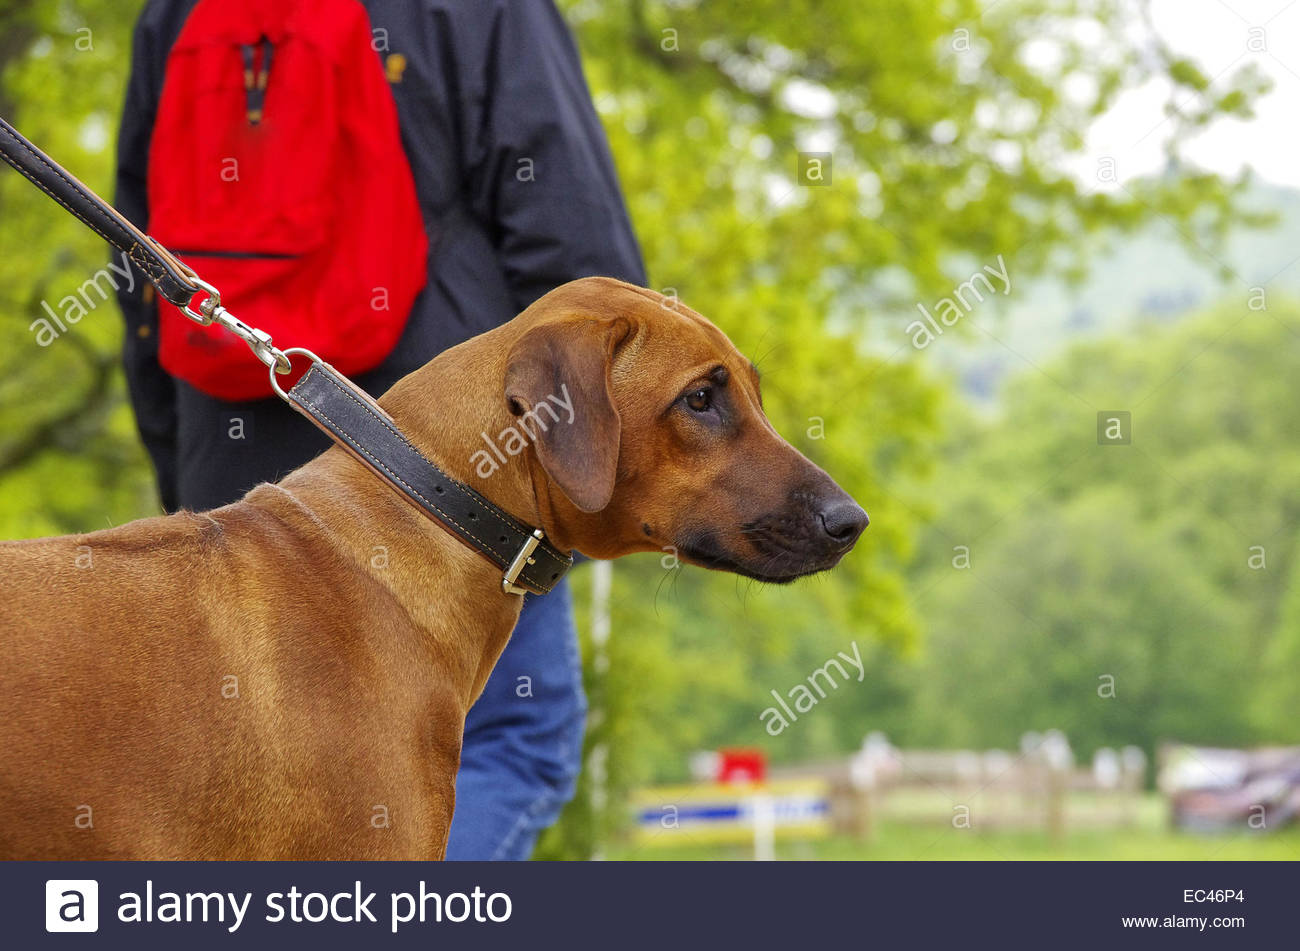 Dog on the line - Stock Image